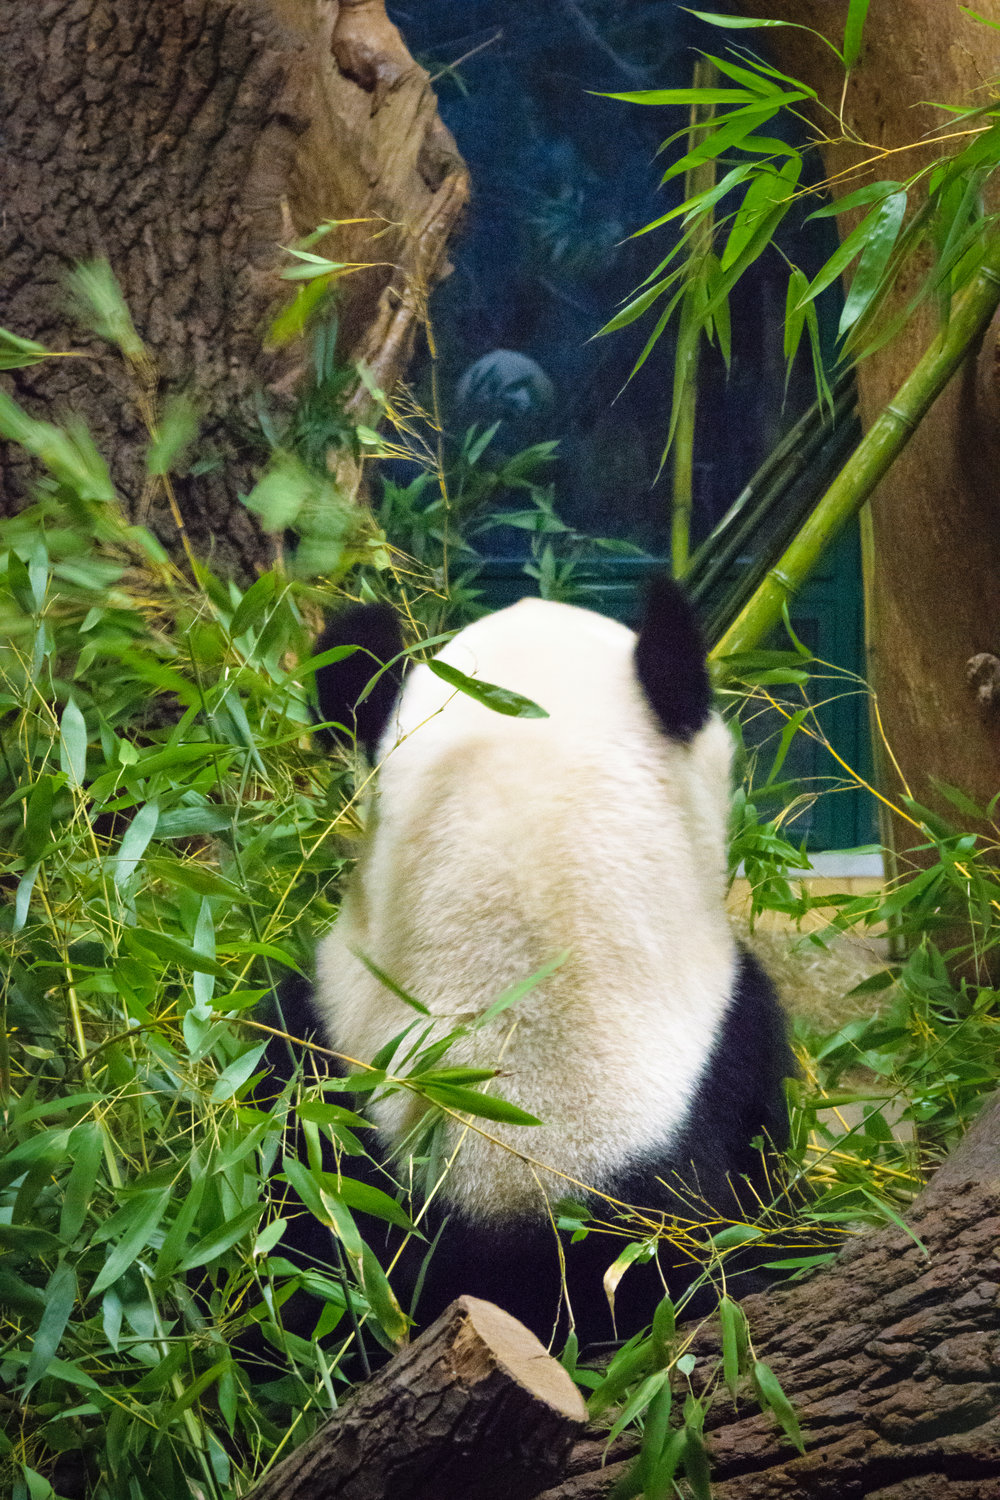 the backside of a sad panda